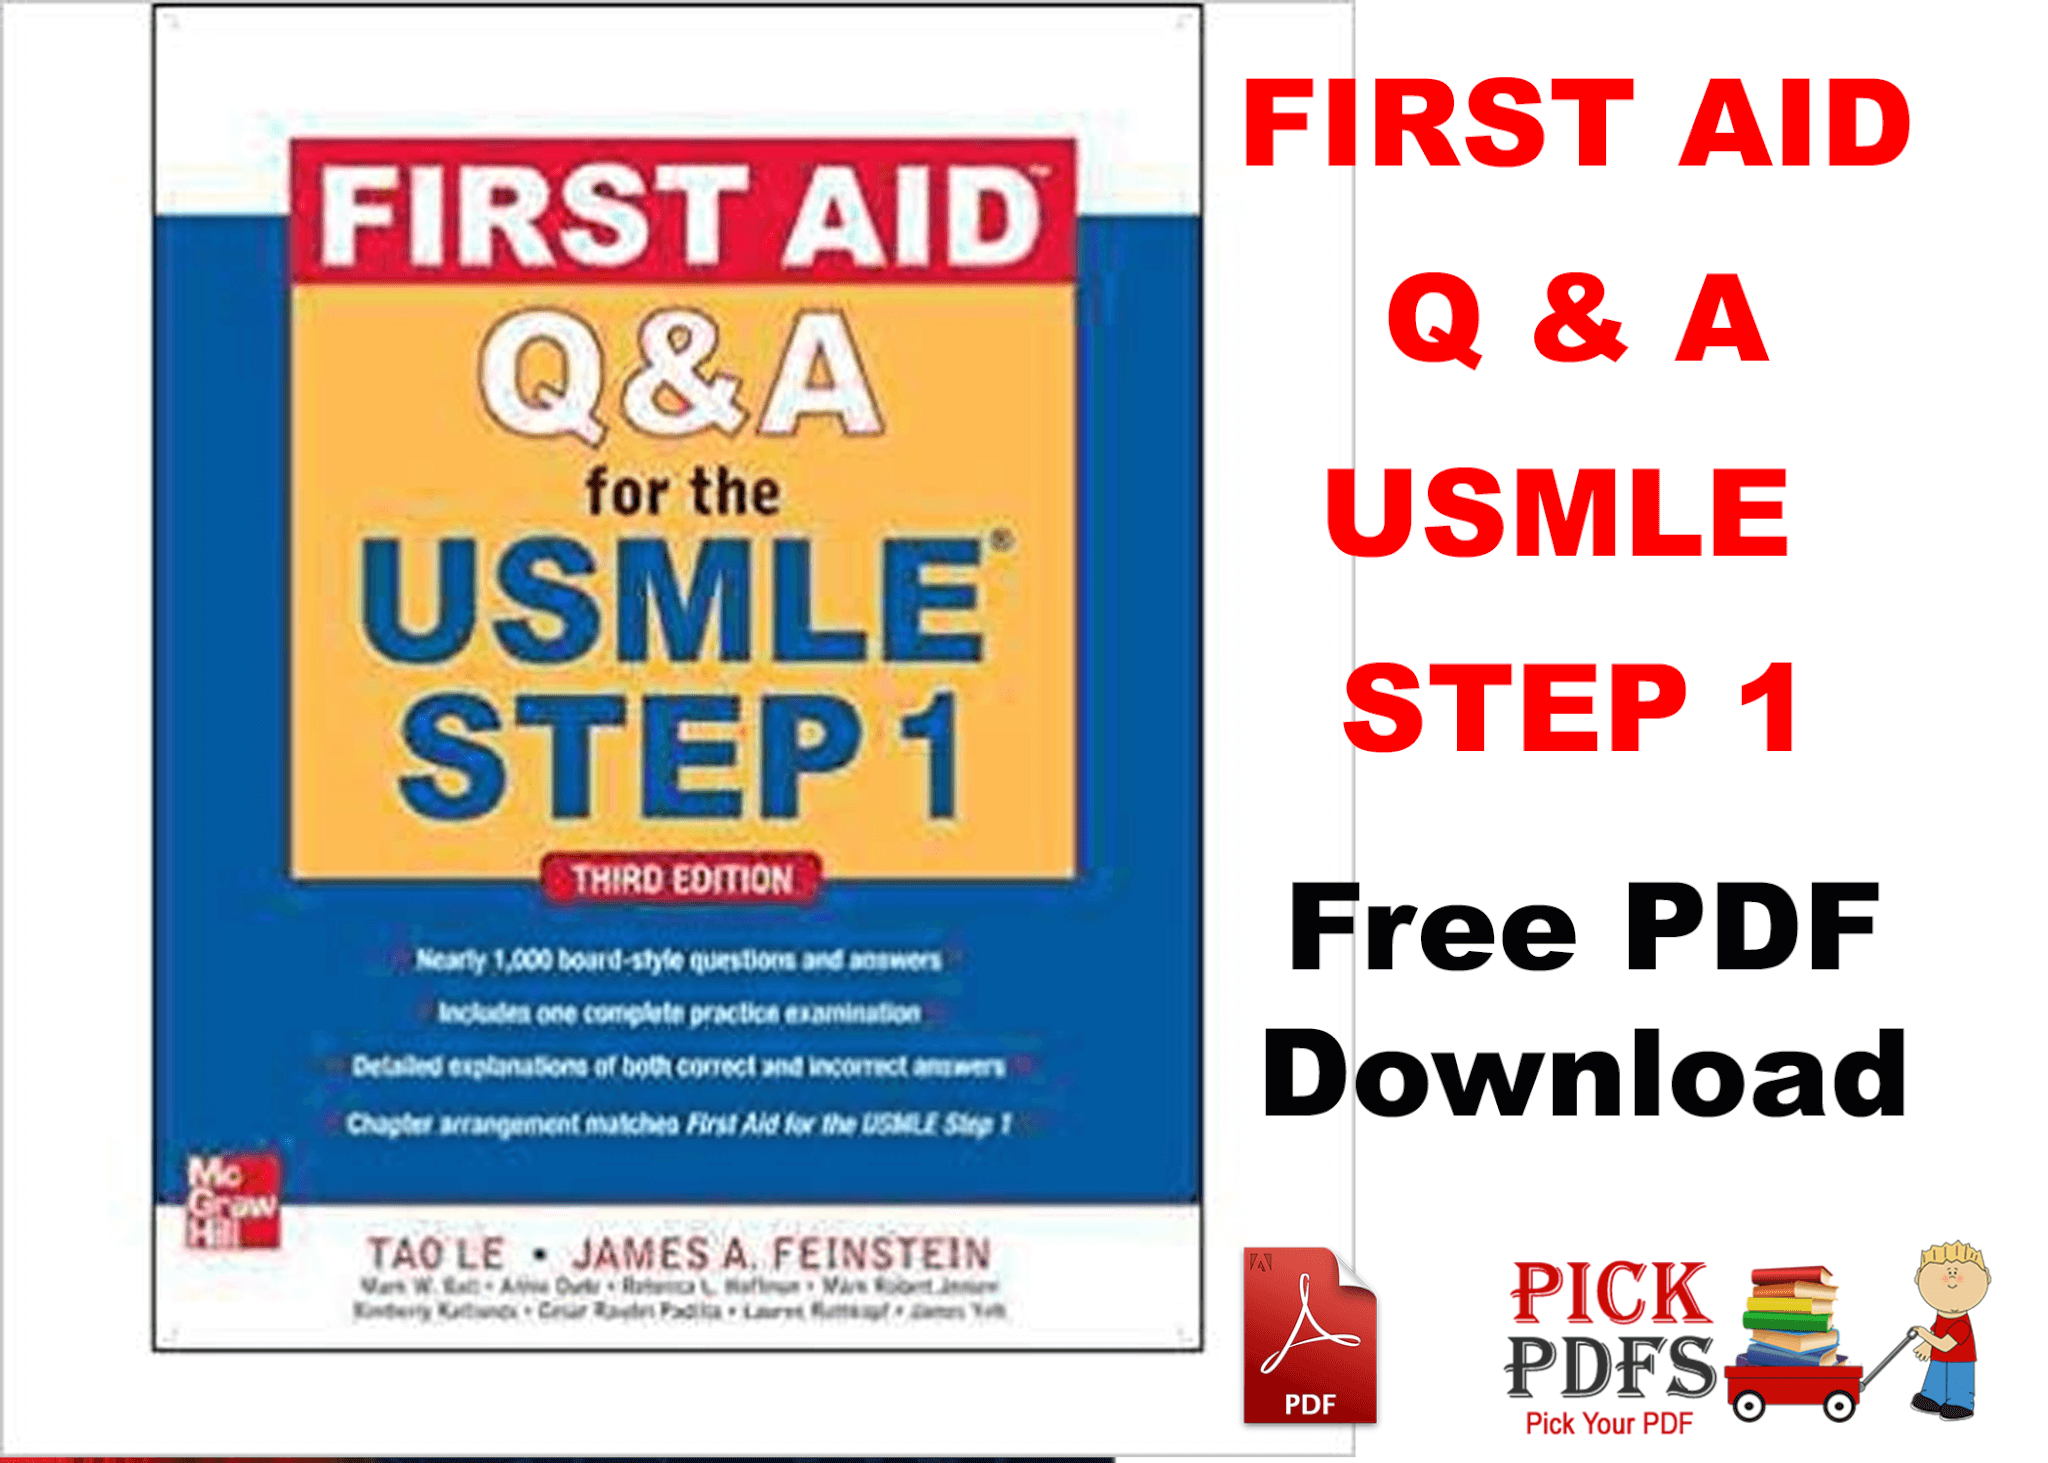 https://pickpdfs.com/first-aid-for-the-usmle-step-3-fifth-edition-pdf-download/